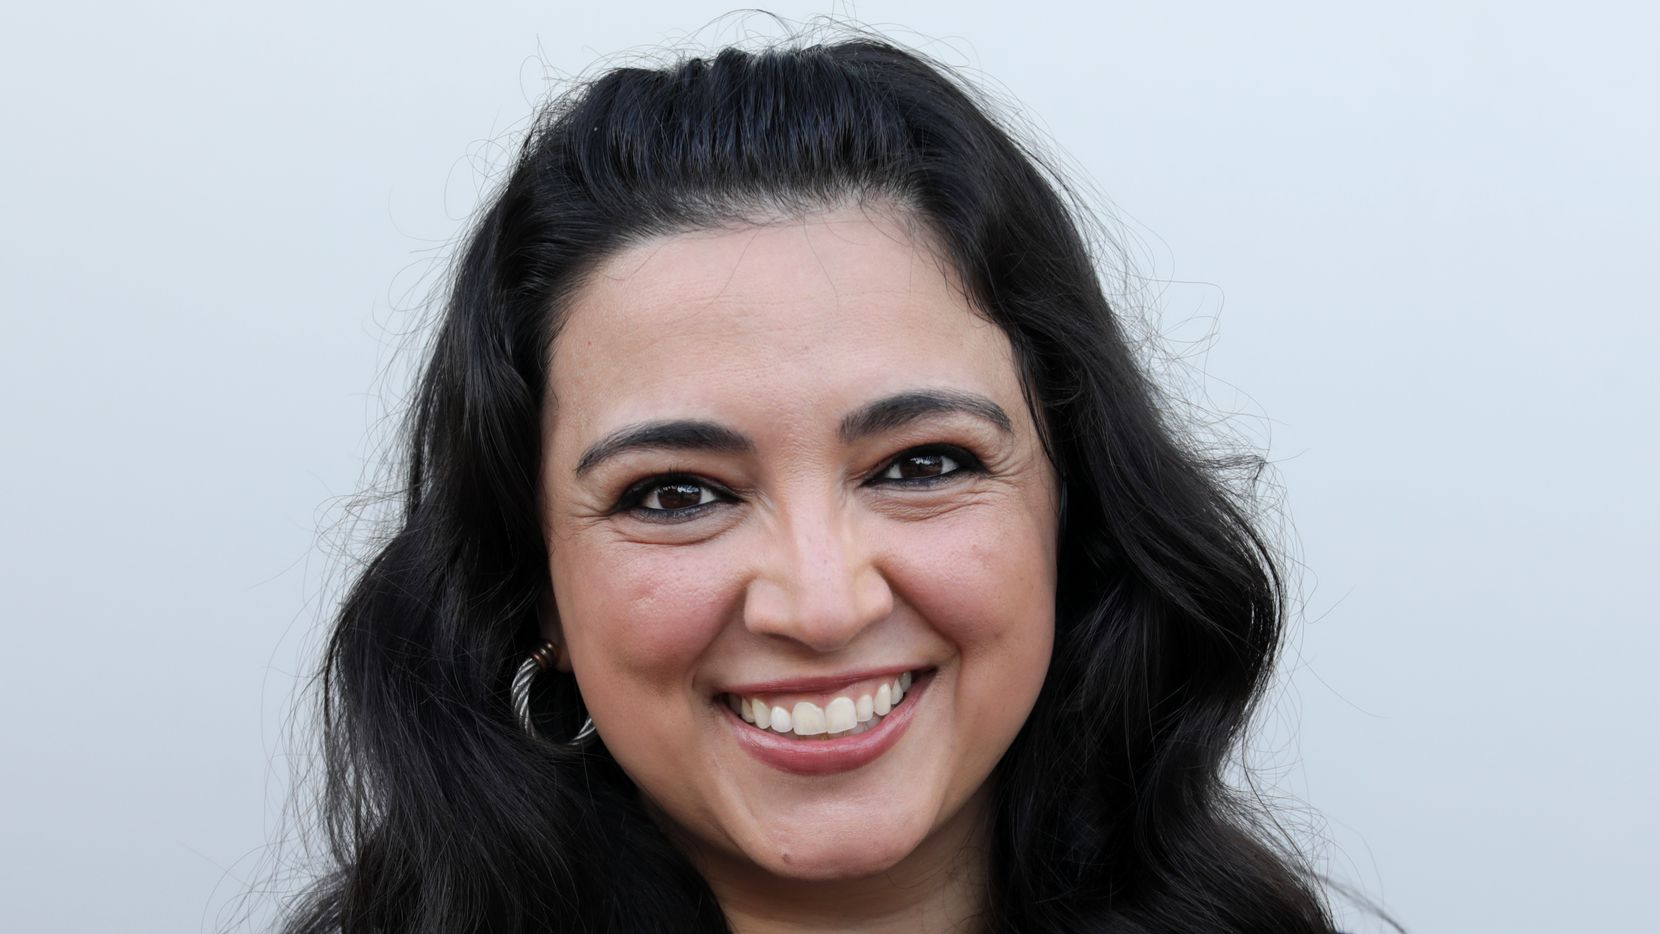 Lulu Seikaly photographed in downtown Plano on Sep. 17, 2020.